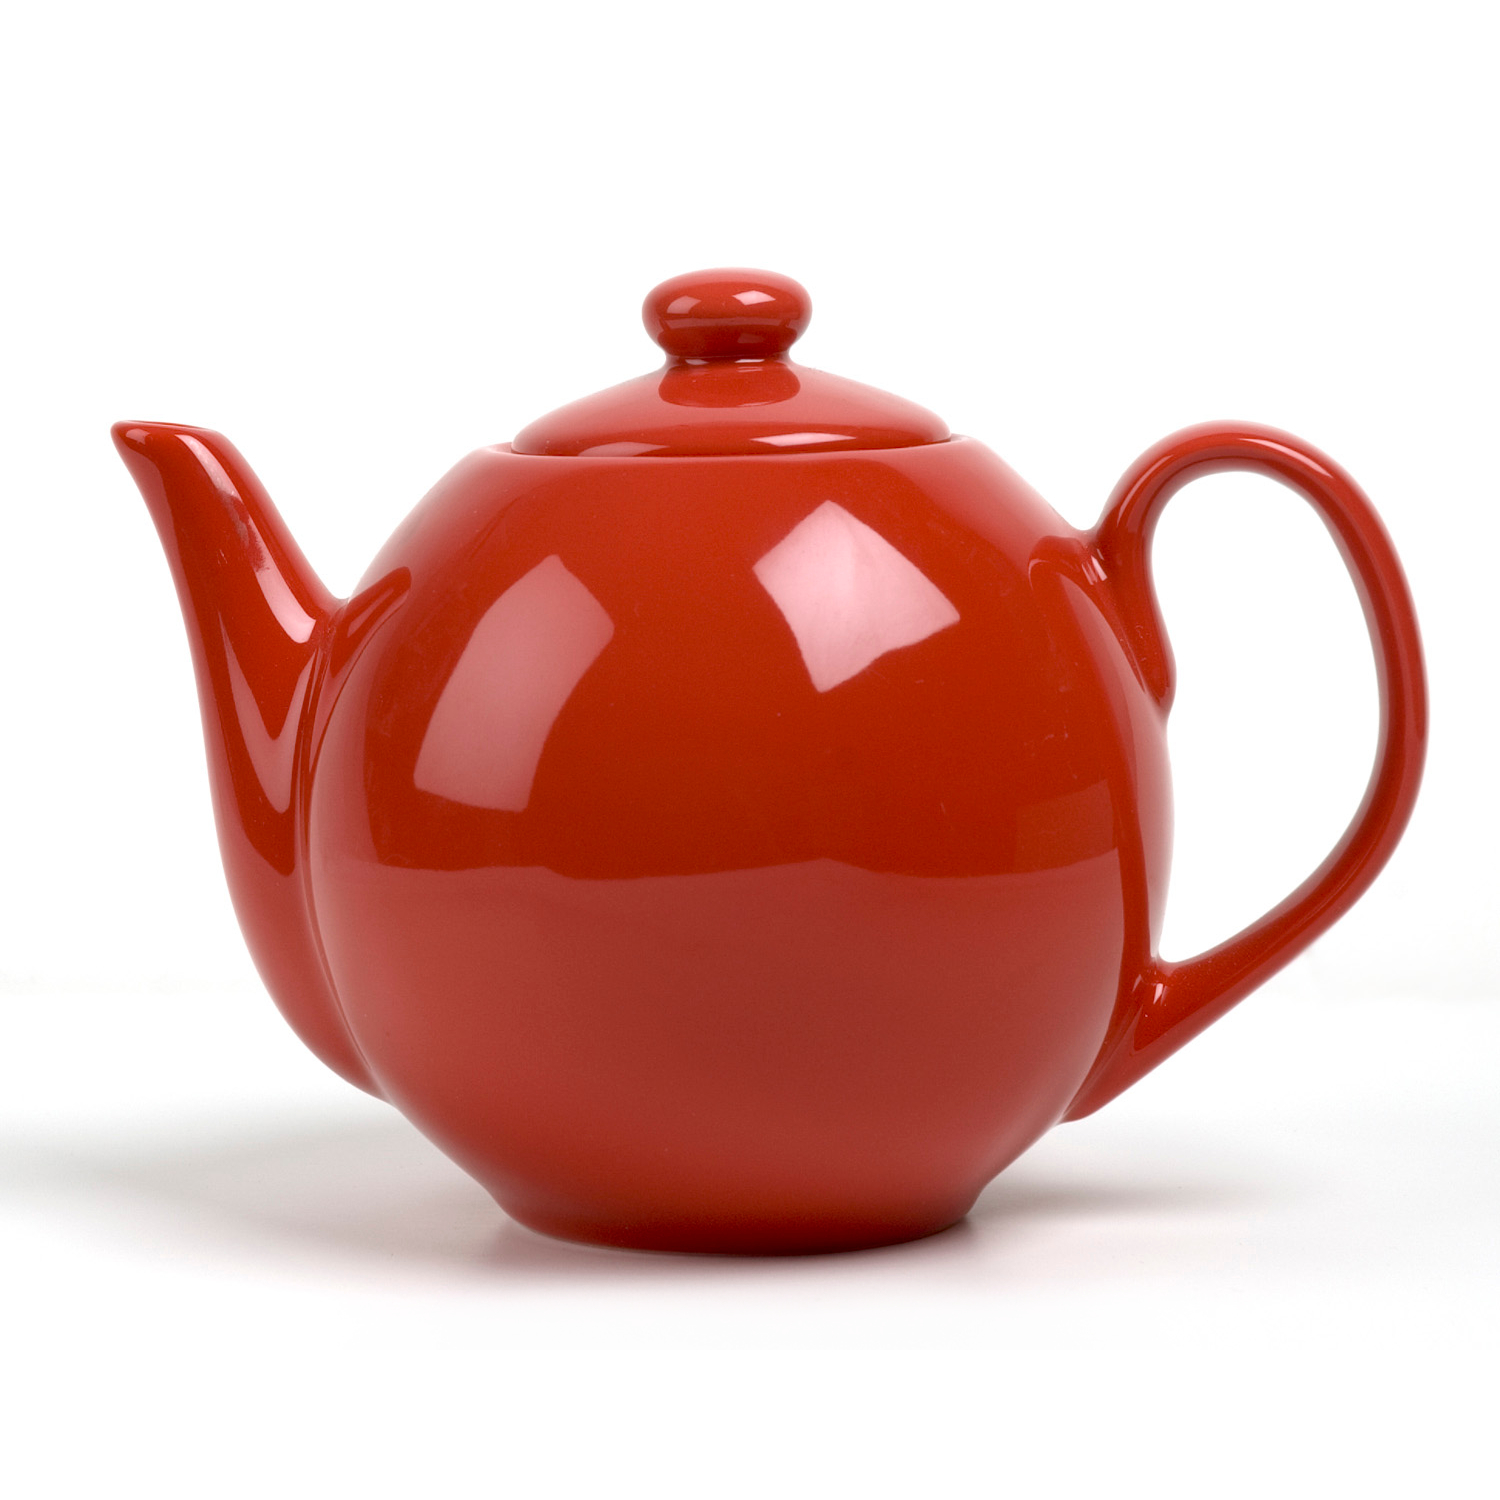 OmniWare Teaz Red Stoneware Lillkin 34 Ounce Teapot with Stainless Steel Mesh Infuser